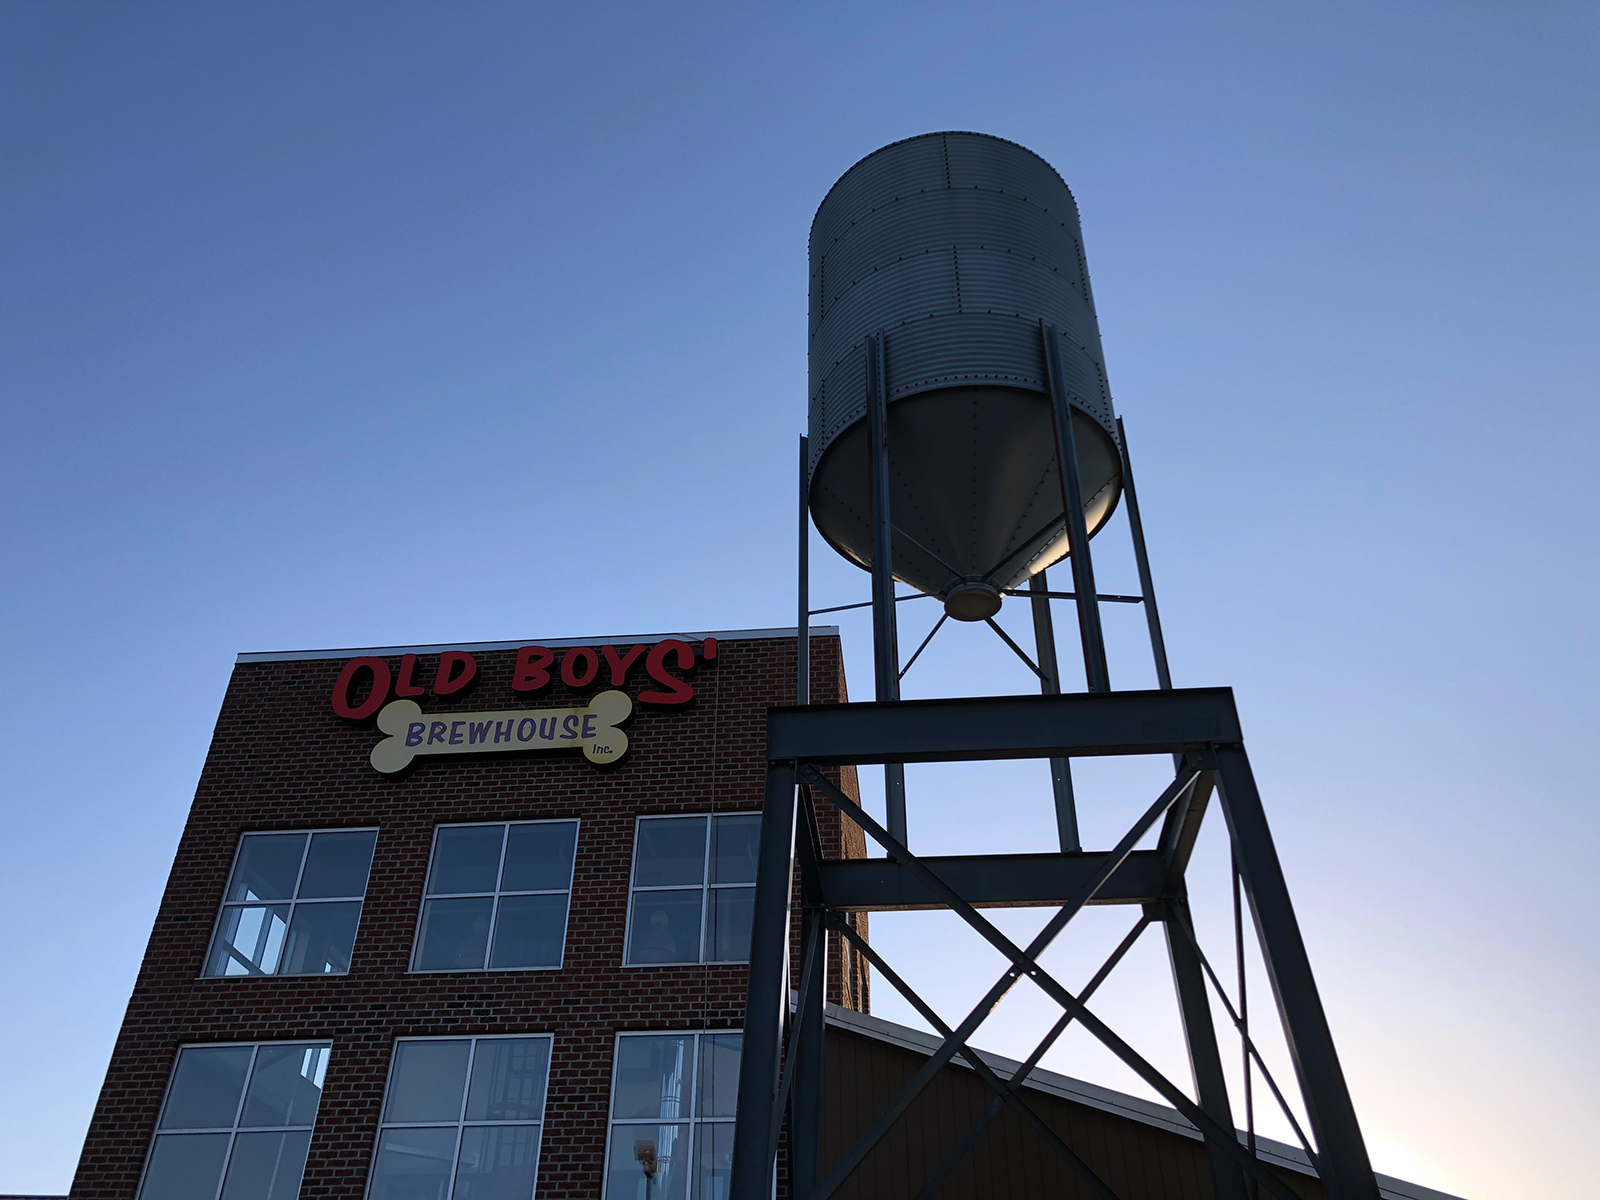 Old Boys' Brewhouse in Spring Lake, Michigan by Hopsmash / Jets Like Taxis